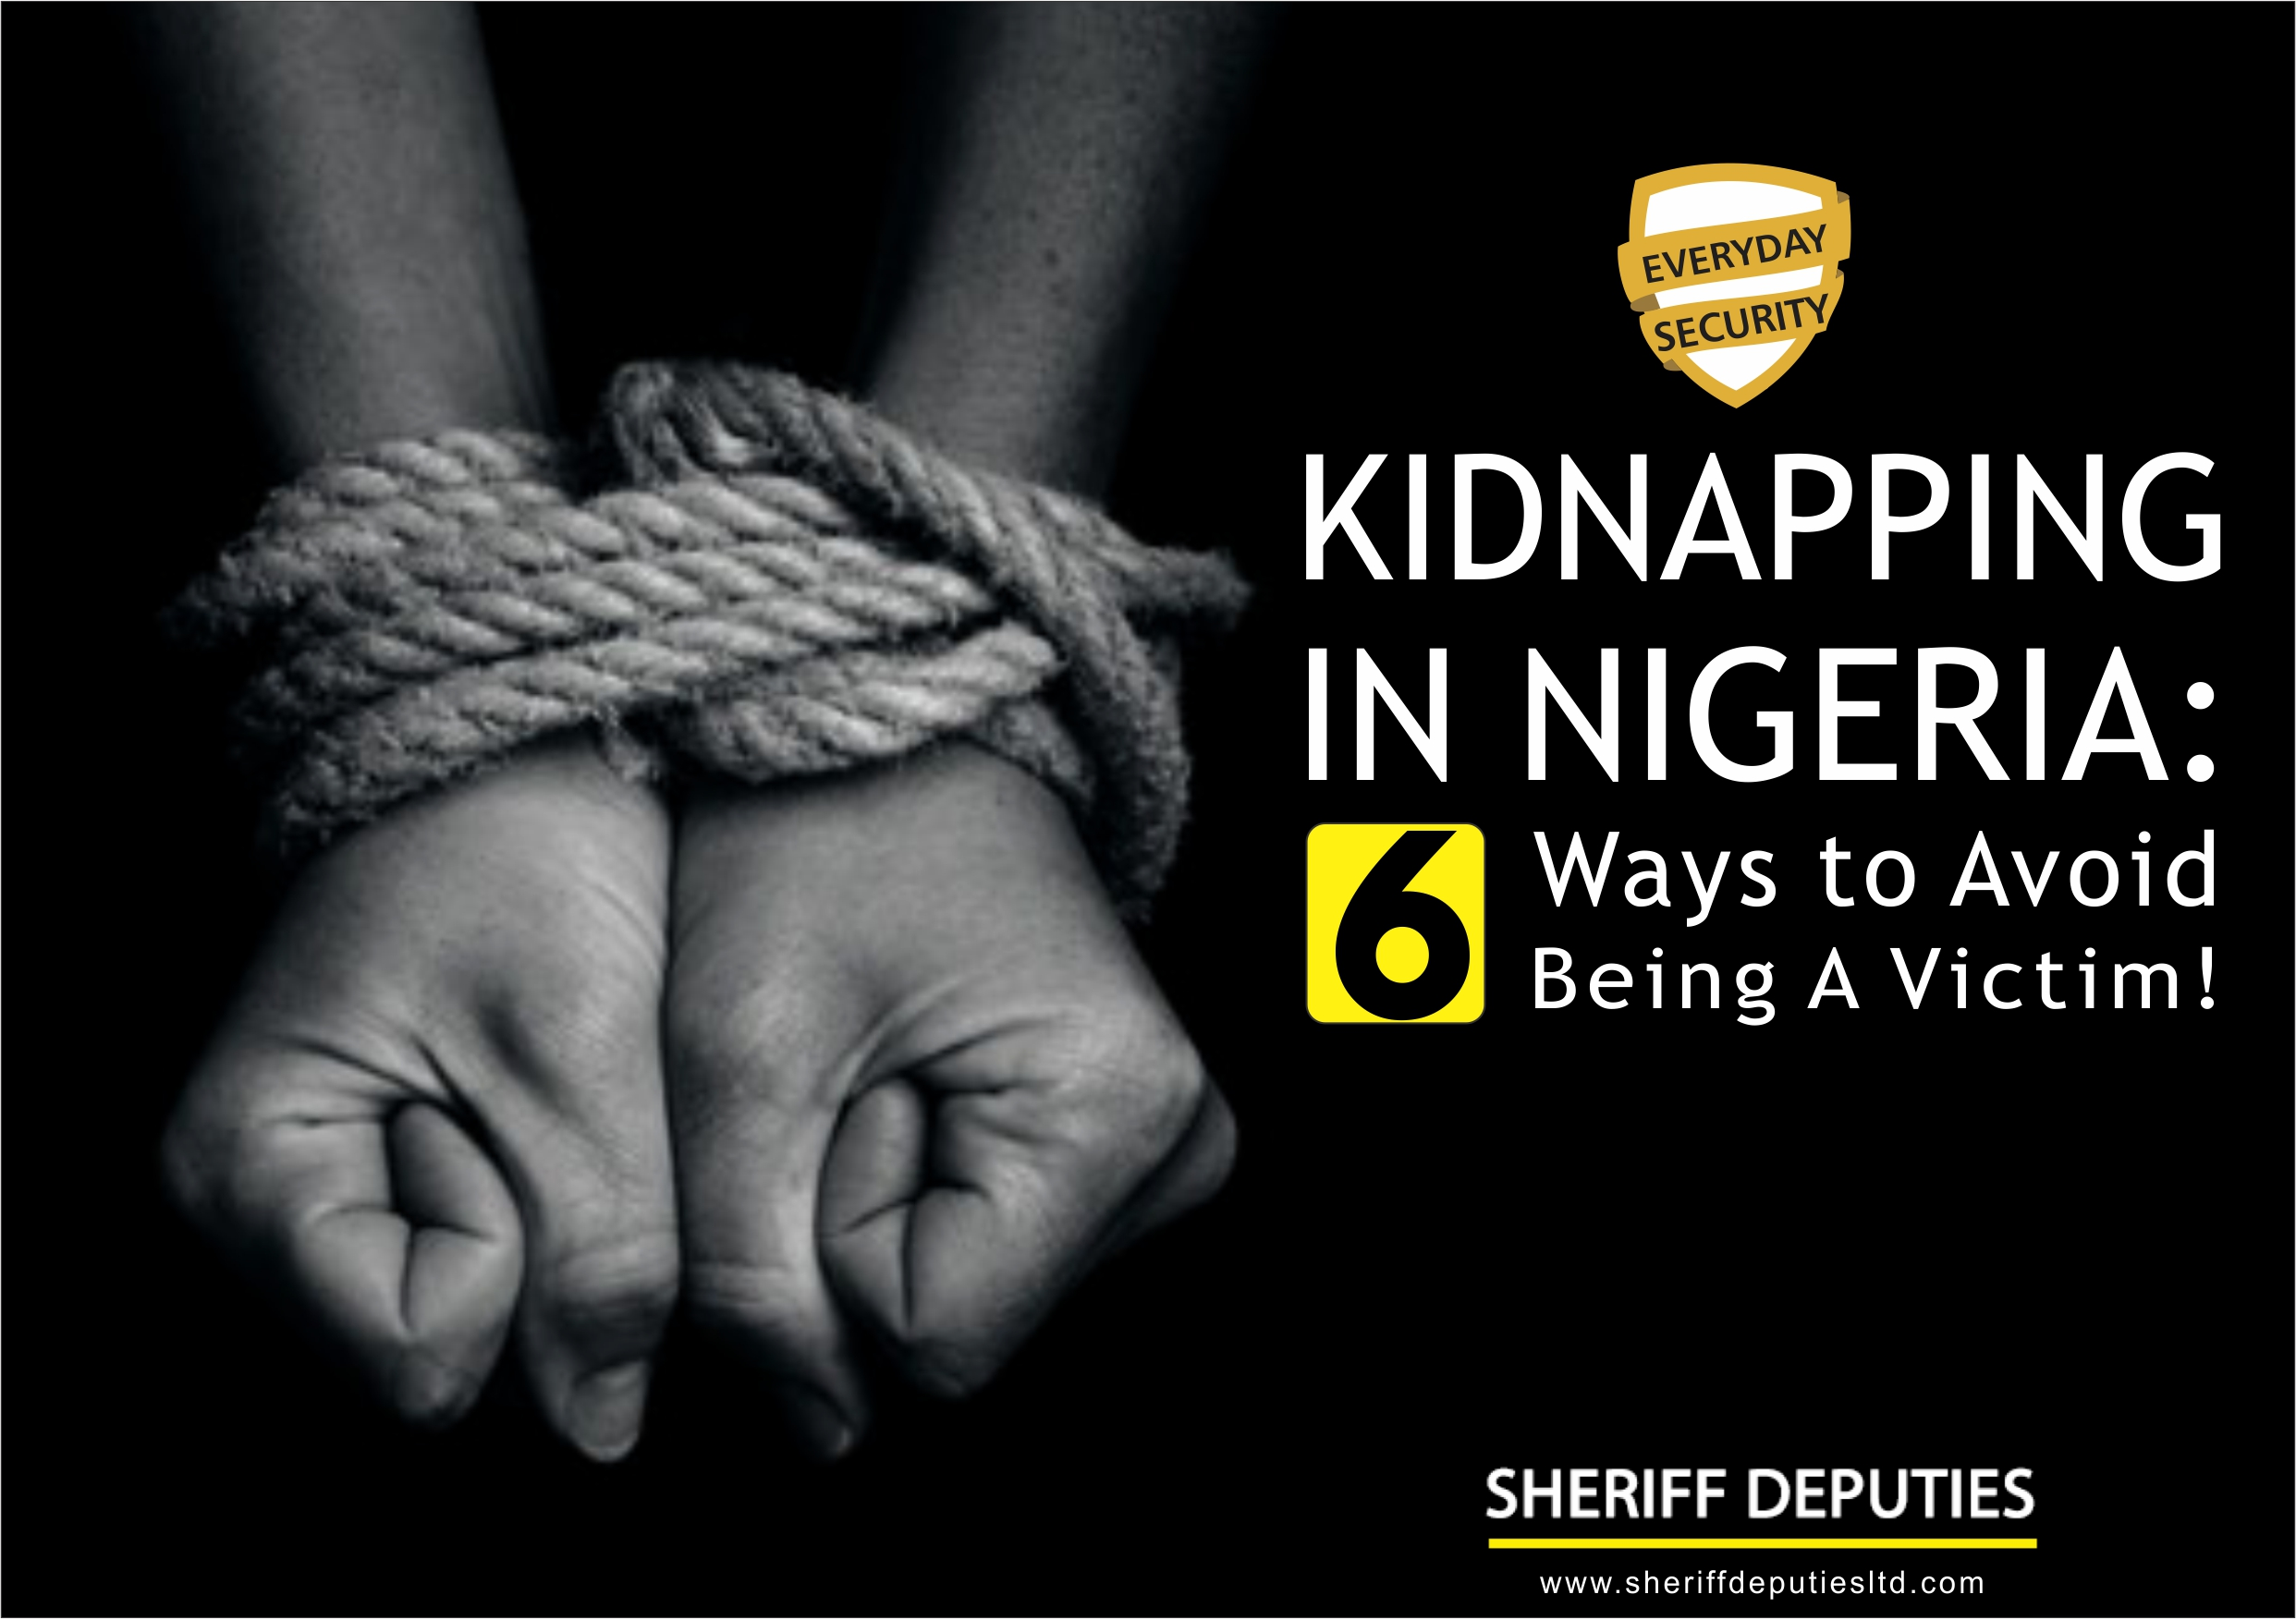 KIDNAPPING IN NIGERIA